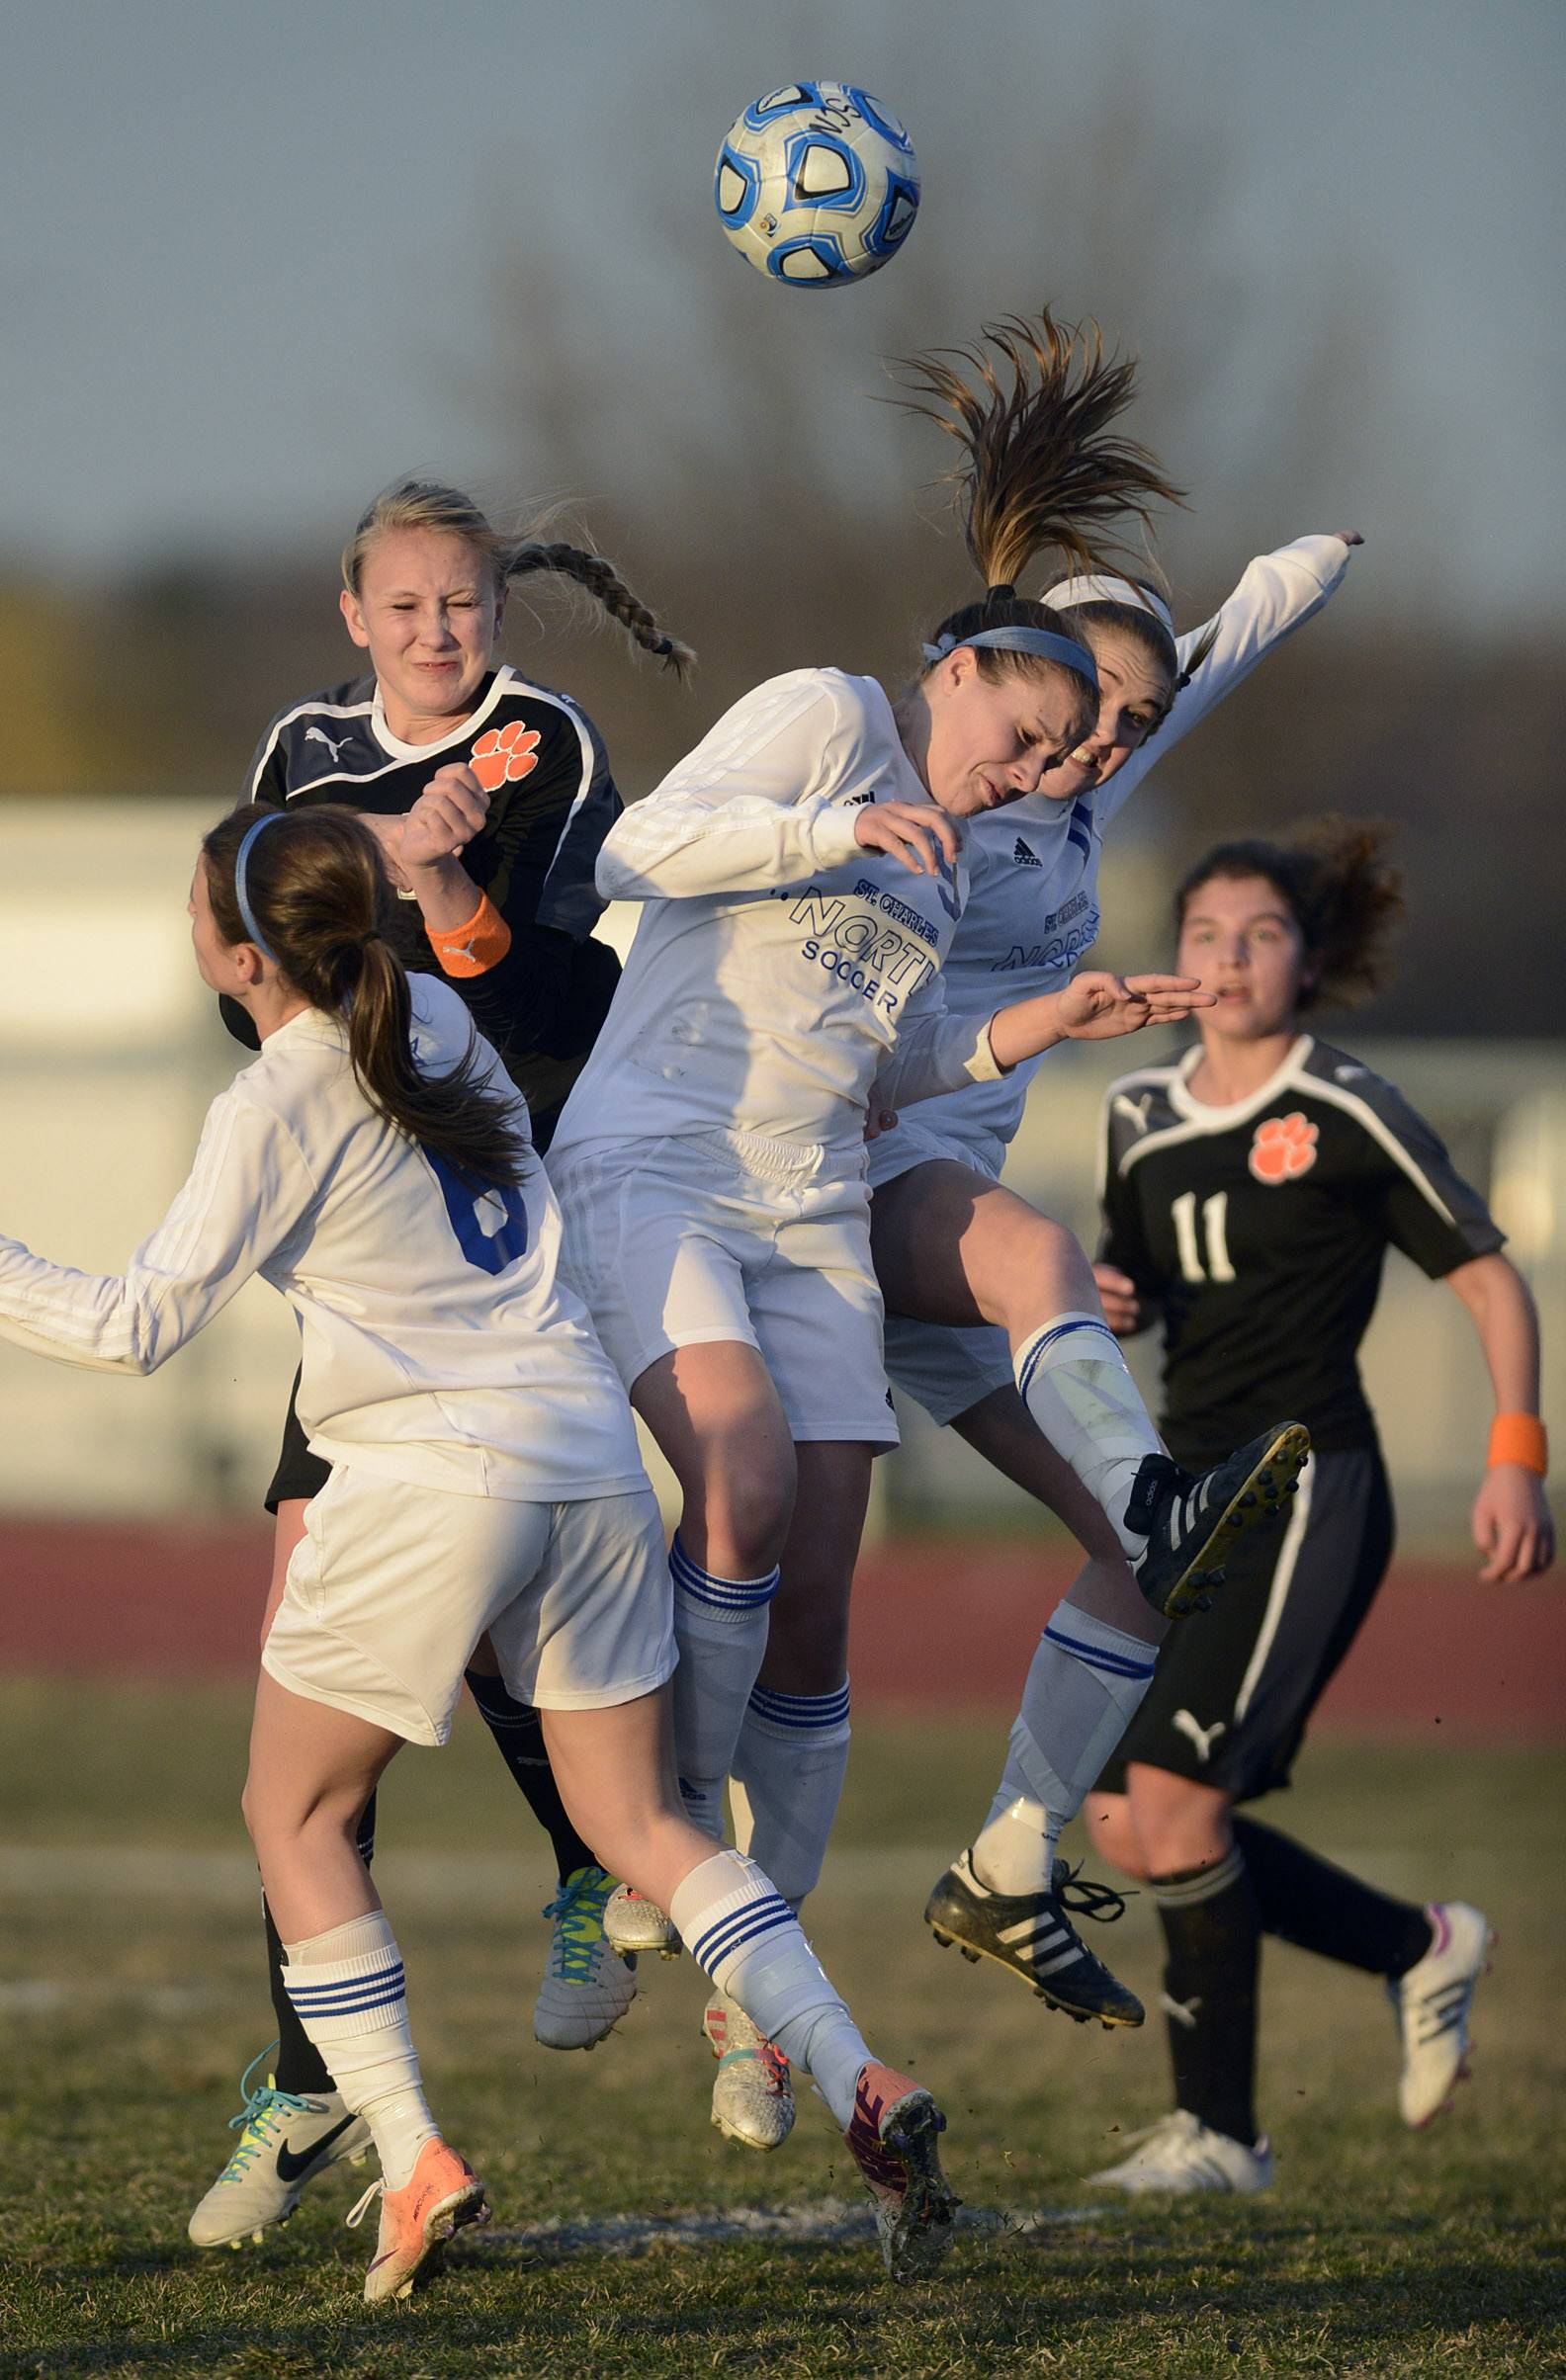 Wheaton Warrenville South's Allison Harvey (left, black jersey) and St. Charles North's Alyssa Brandt, center, and Taylor Sypien, right bounce off each other as they fight to receive the ball in the first half on Thursday, April 10.